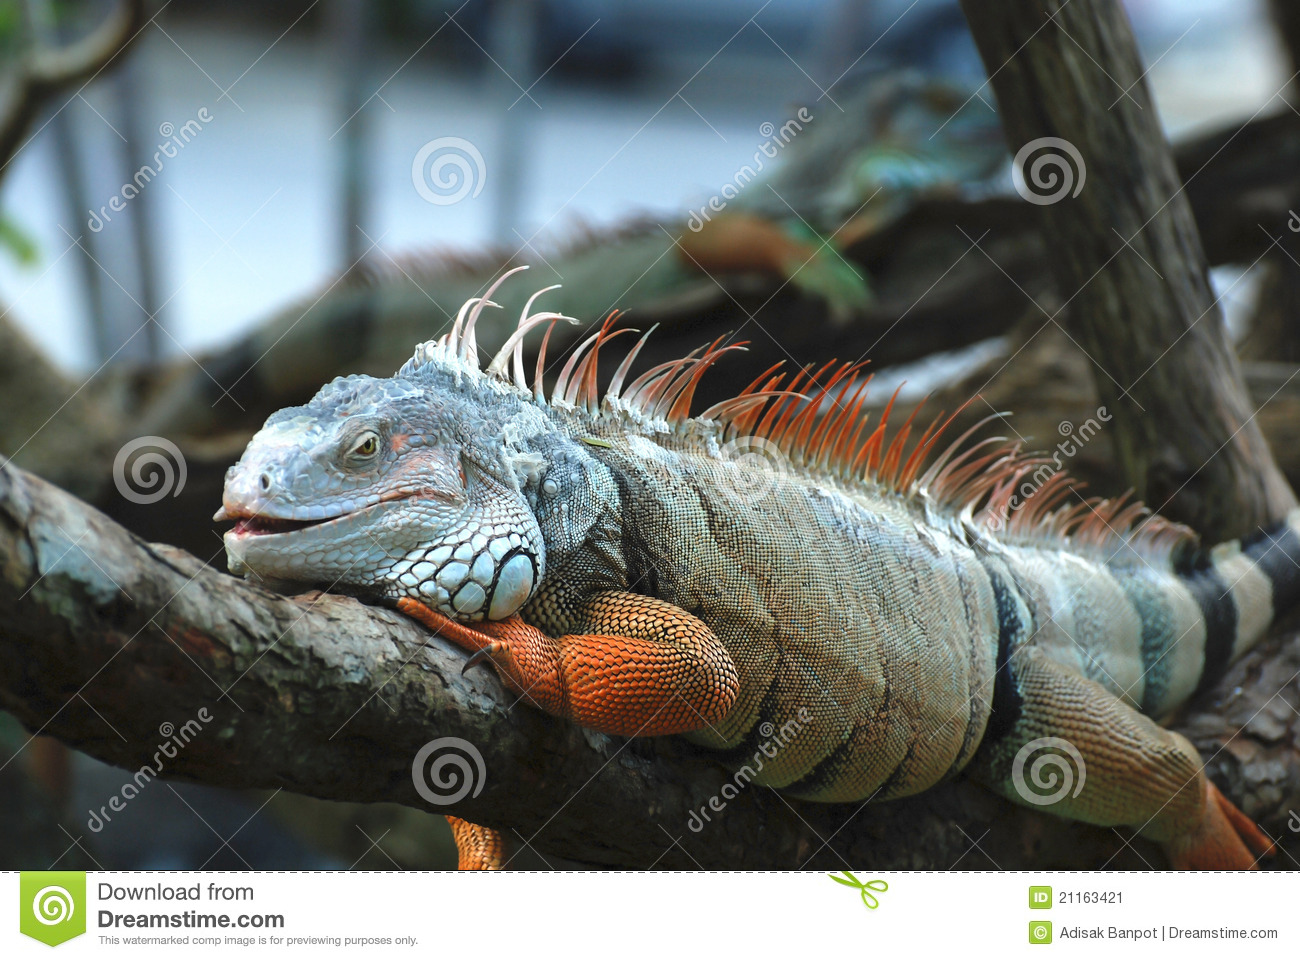 The beautiful iguana portrait against black background.